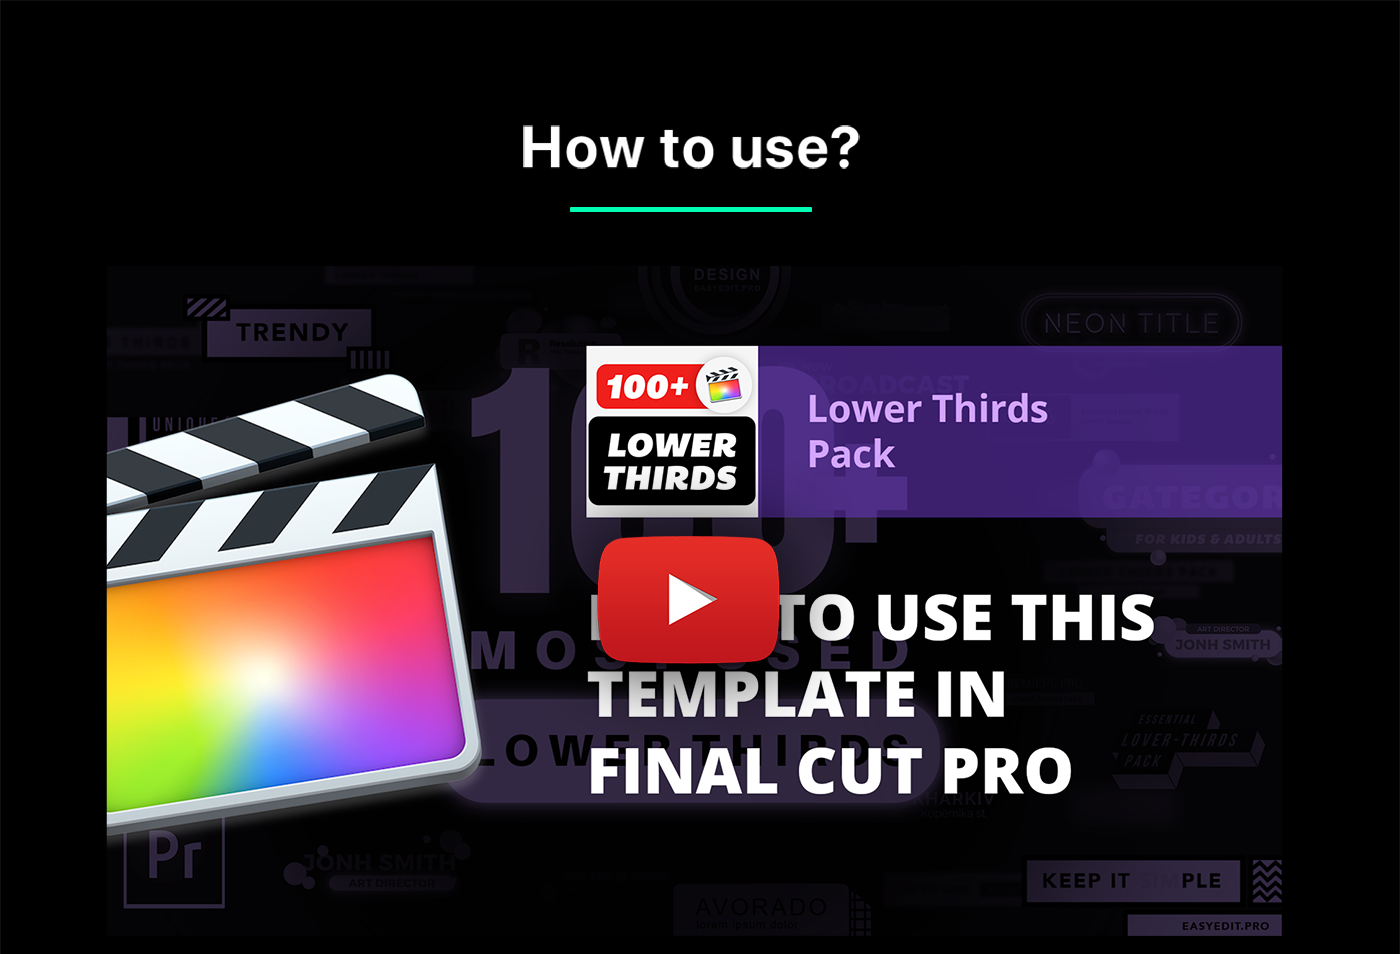 Videohive | Lower Thirds Pack | Final Cut Free Download #1 free download Videohive | Lower Thirds Pack | Final Cut Free Download #1 nulled Videohive | Lower Thirds Pack | Final Cut Free Download #1